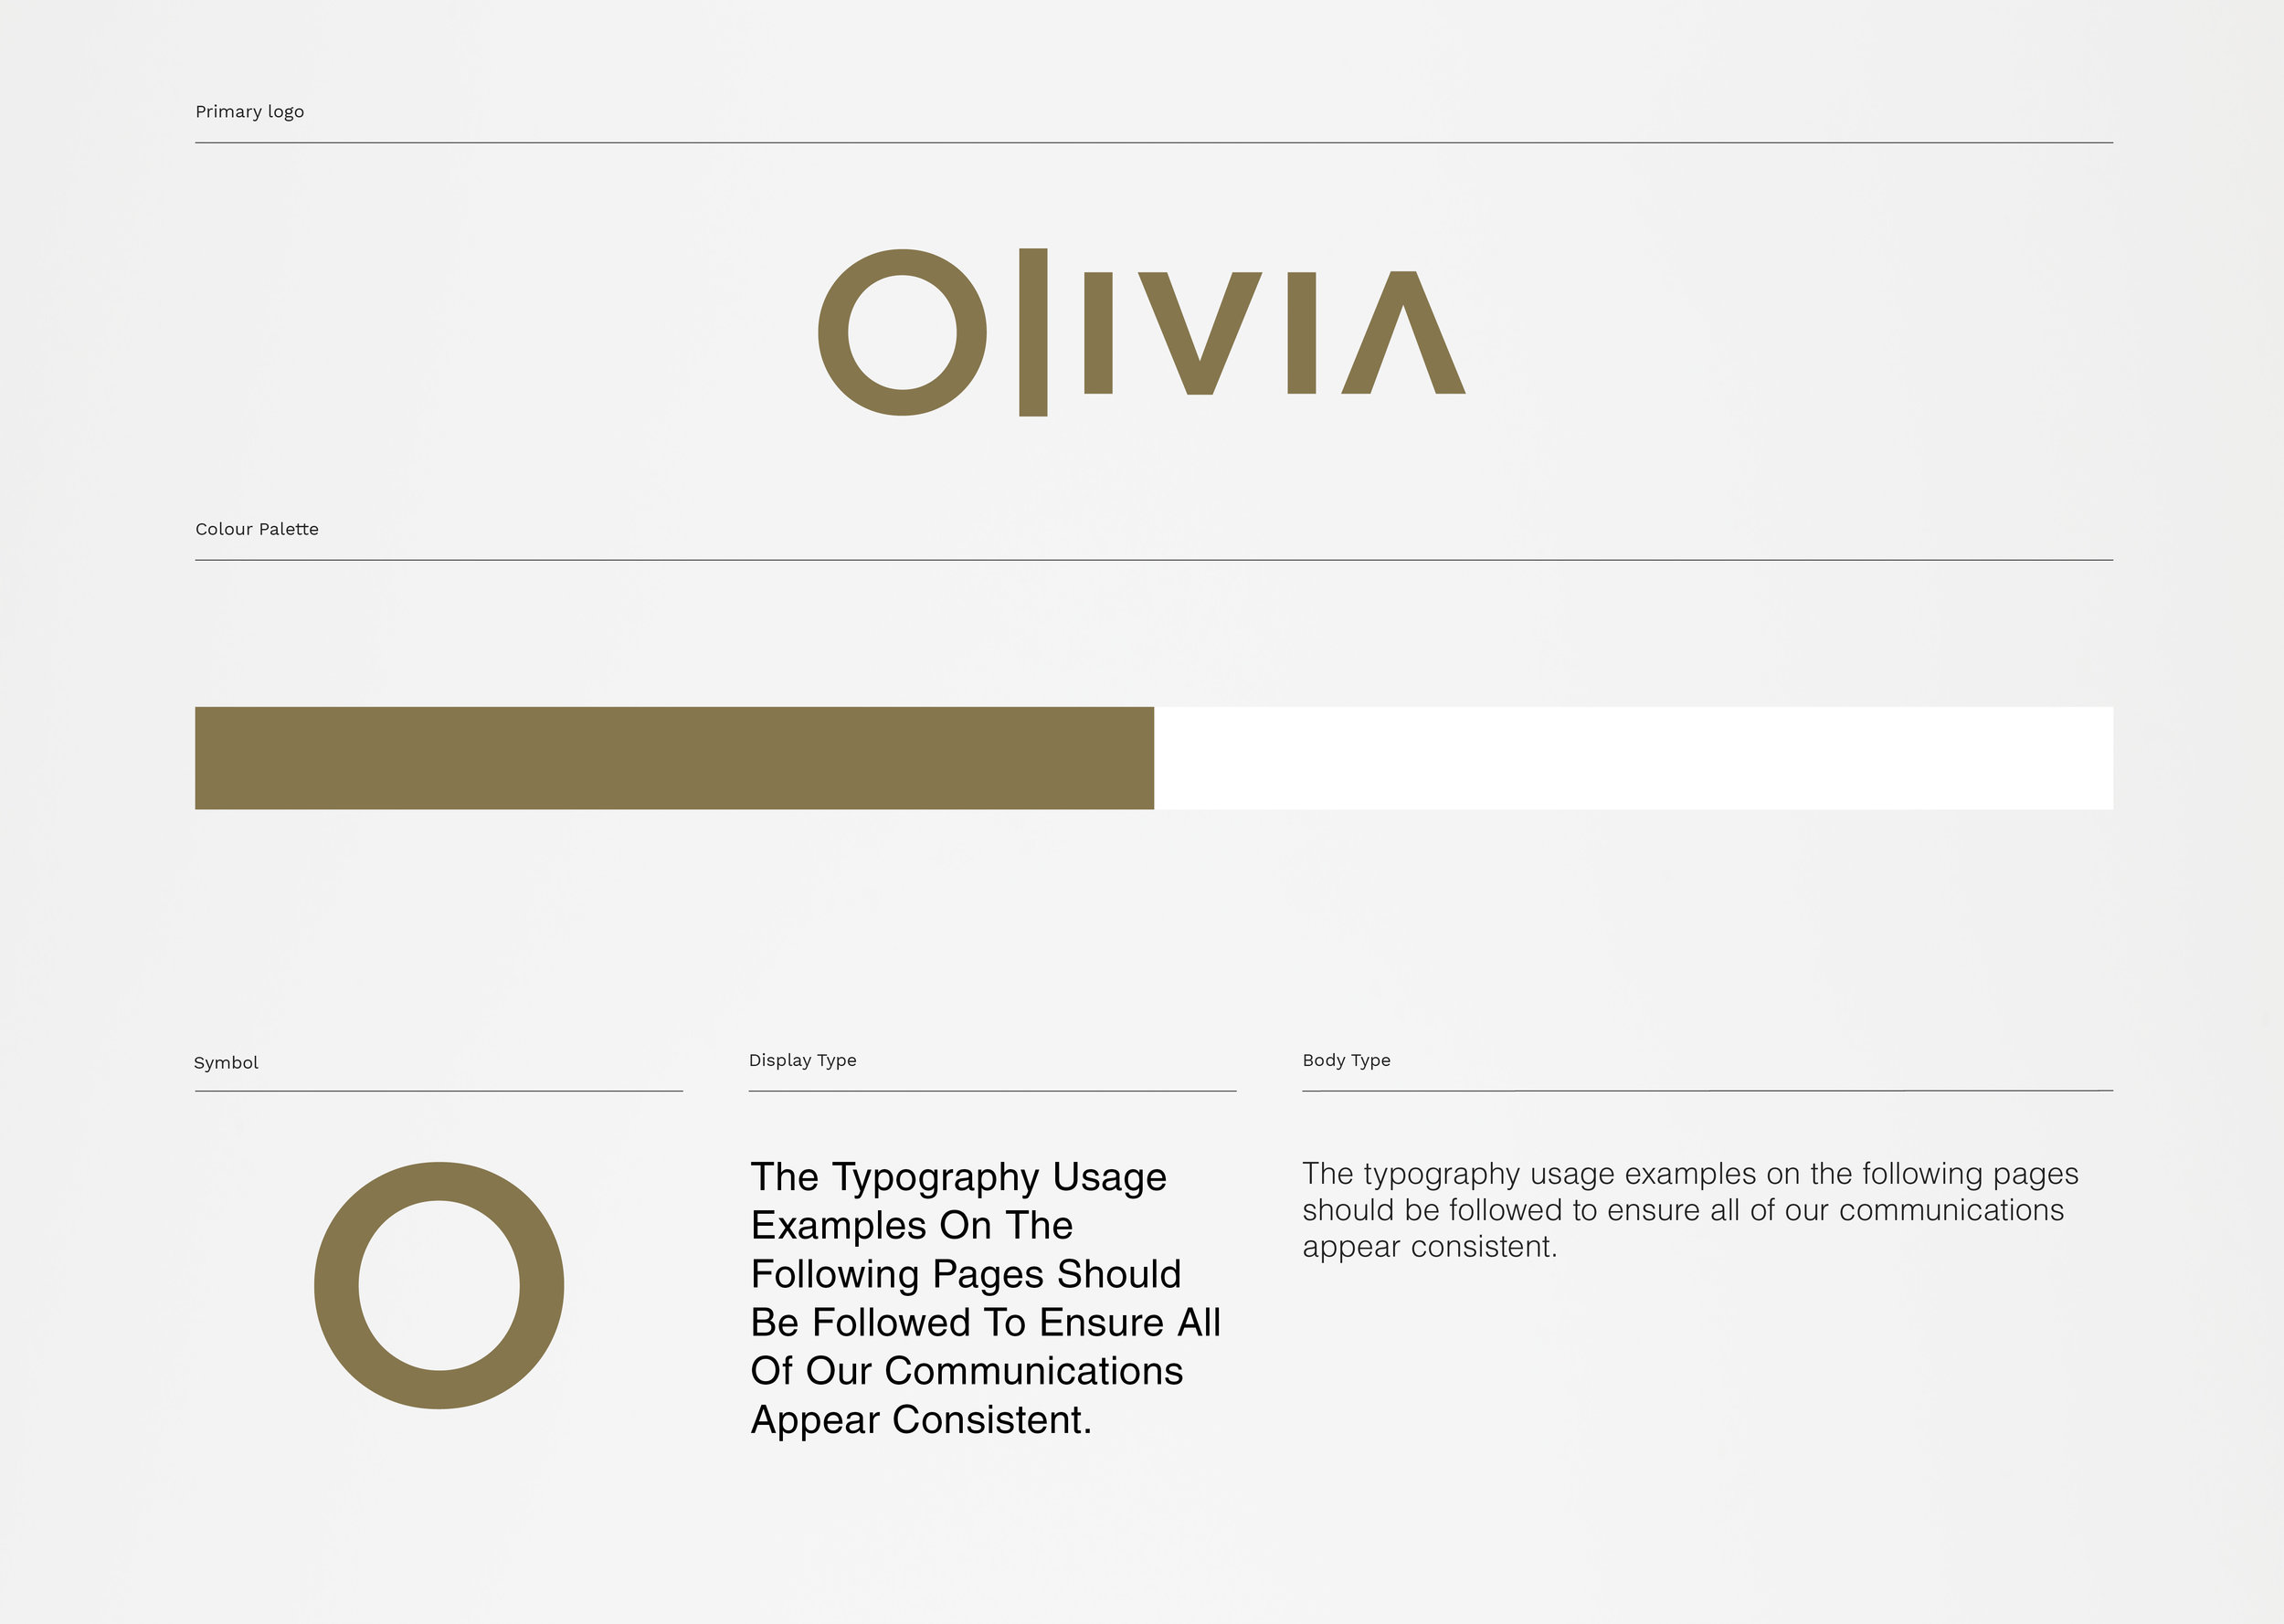 olivia web case study_28march7.jpg